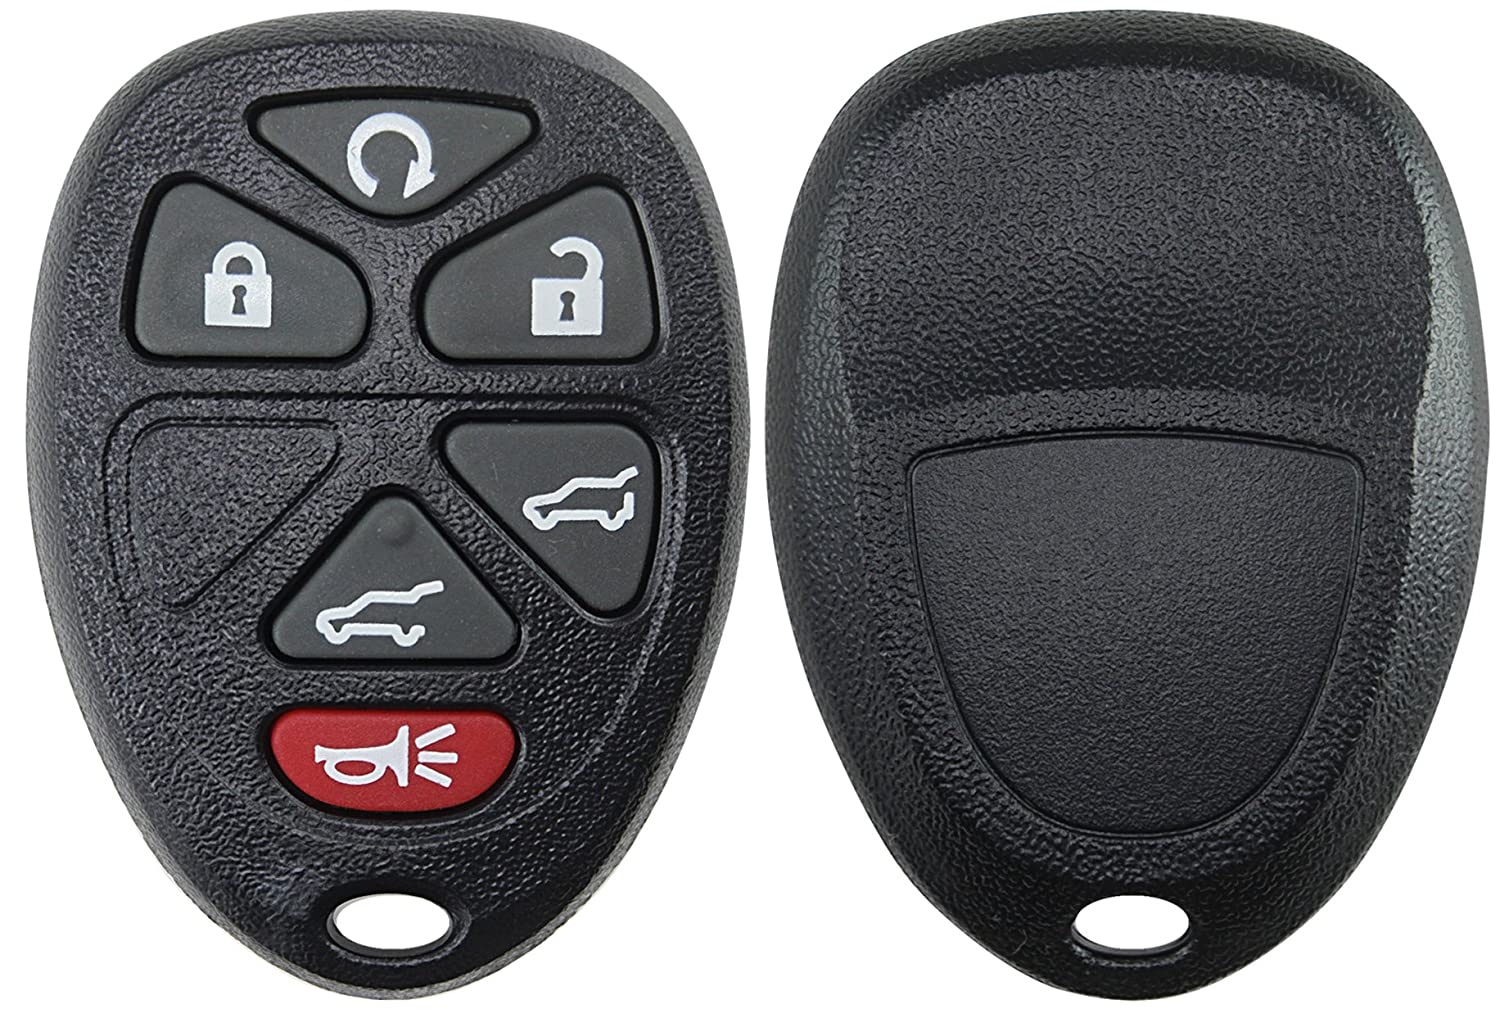 KeylessOption Replacement 6 Button Keyless Entry Remote Key Fob Shell Case and Button Pad Compatible with OUC60270 KPT2721